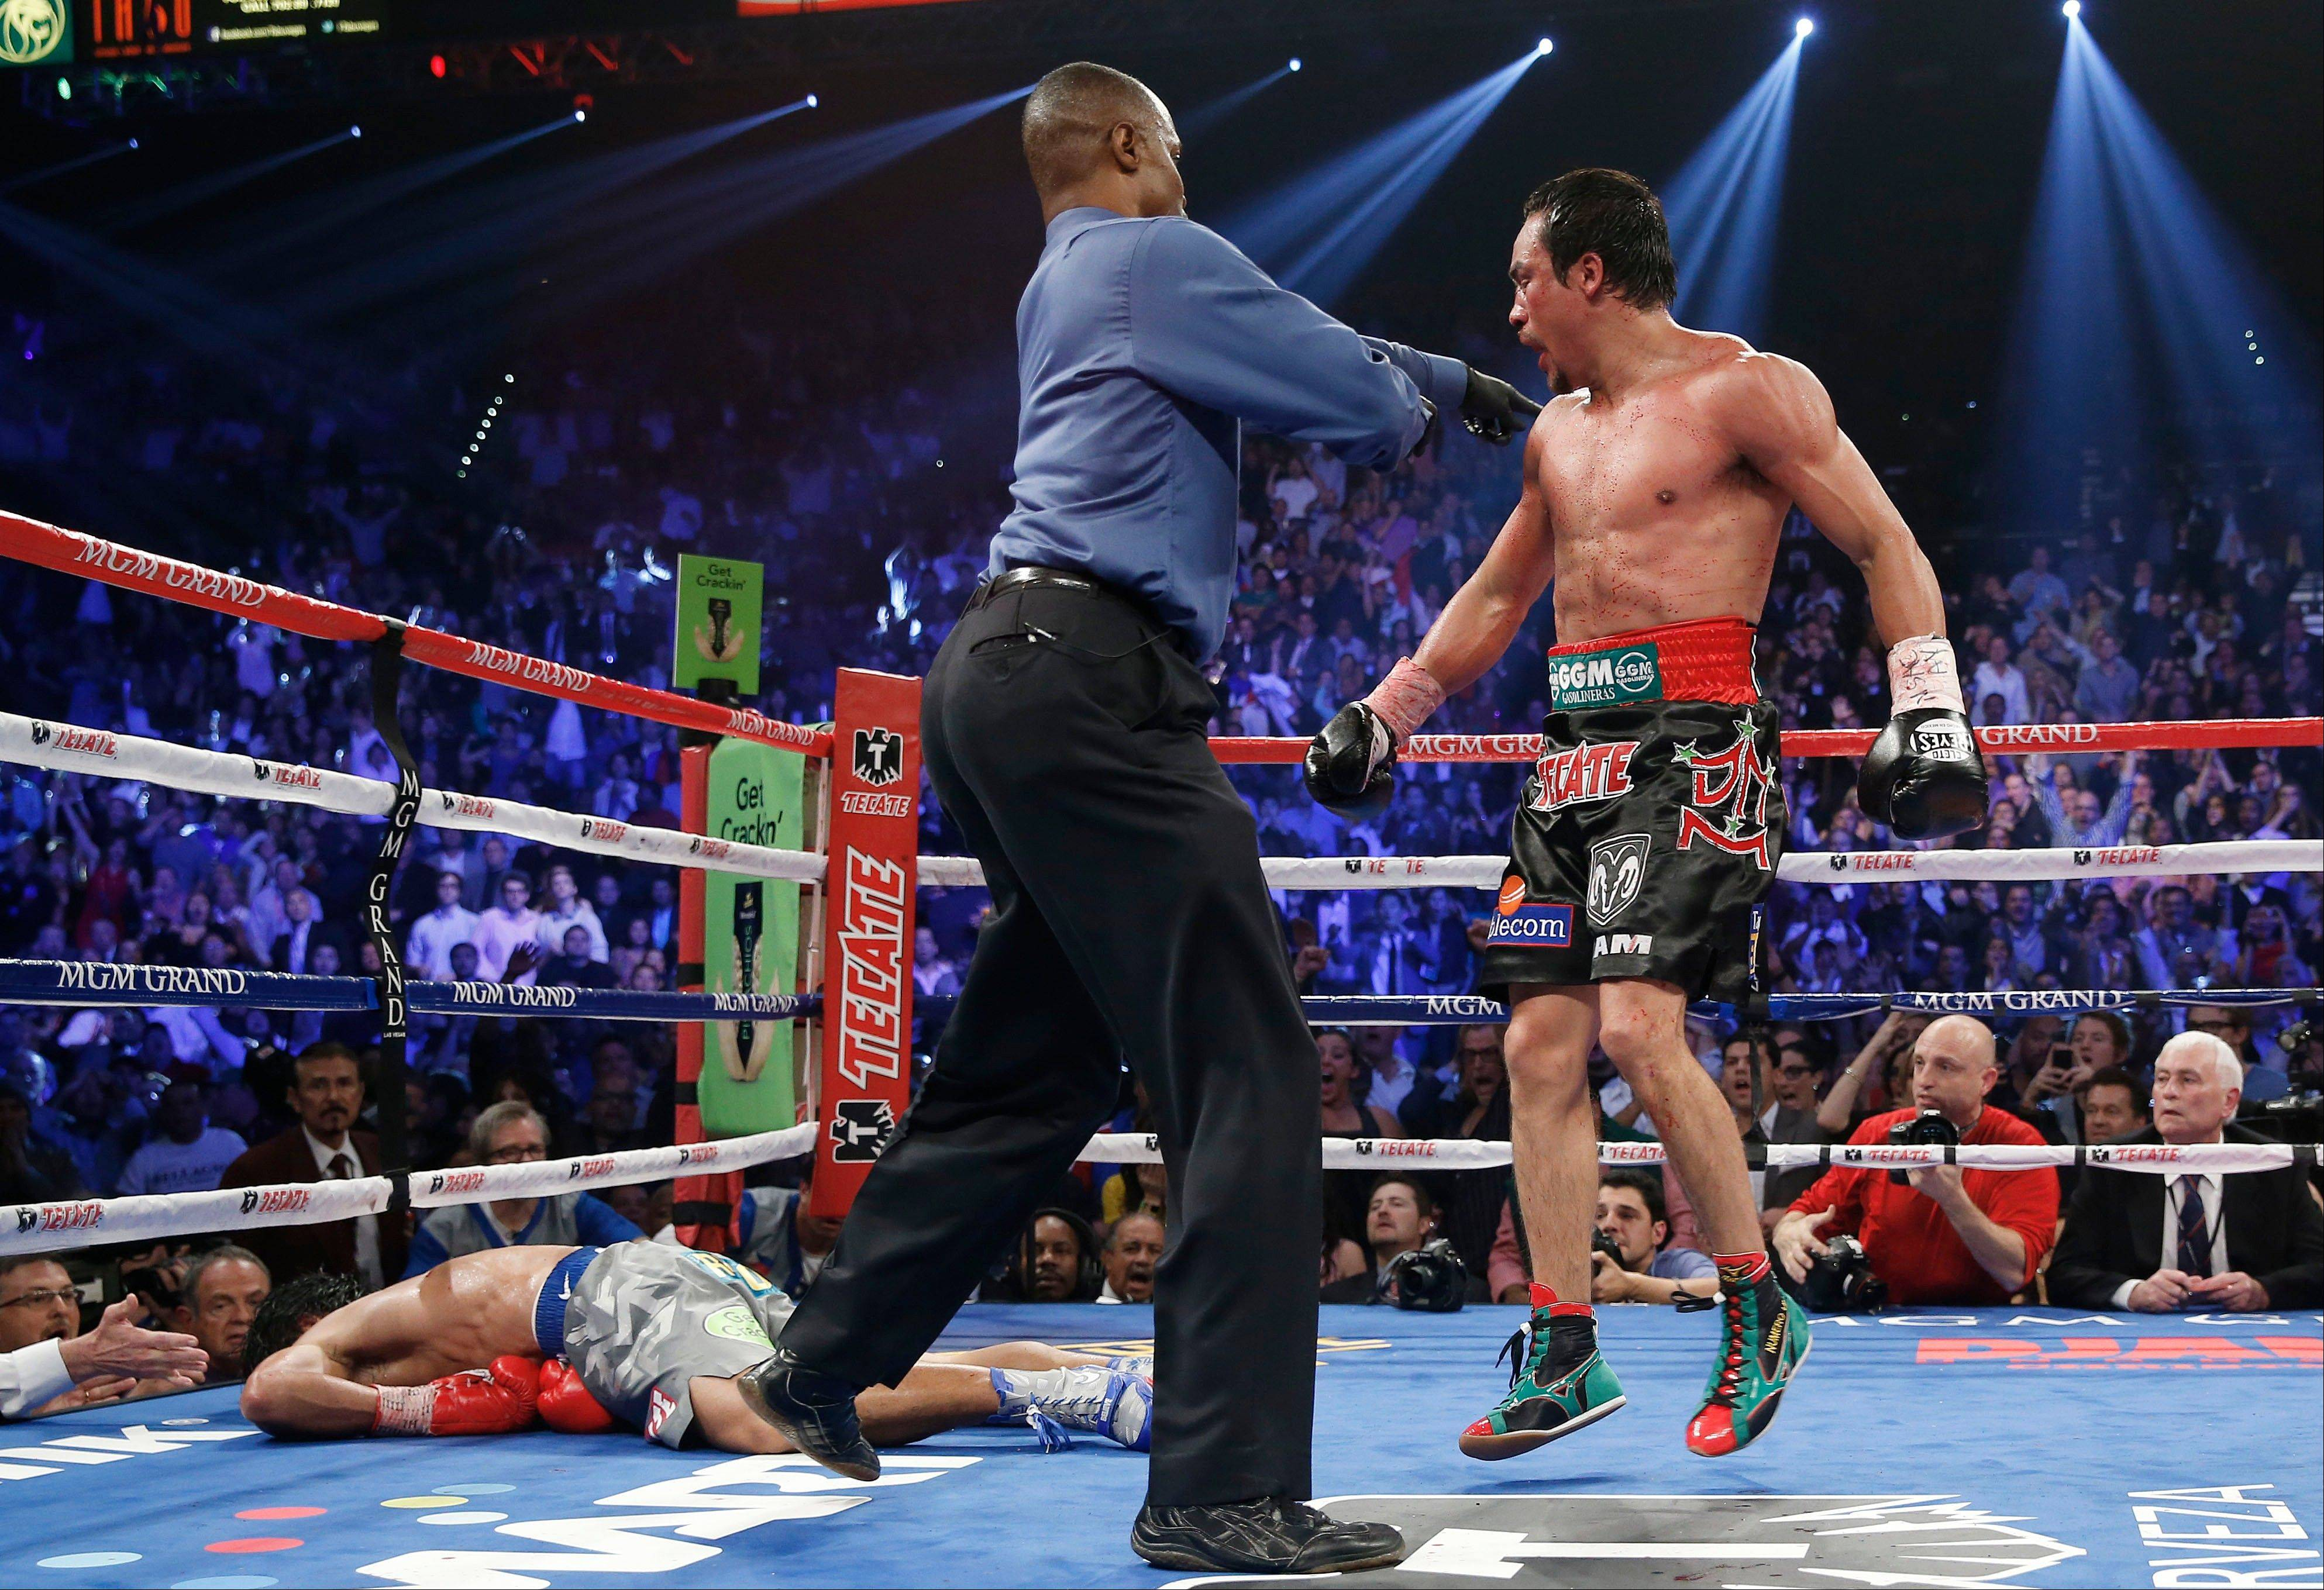 Referee Kenny Bayless, center, sends Juan Manuel Marquez, from Mexico, right, to his corner after he knocked out Manny Pacquiao, from the Philippines, left in the sixth round of their WBO world welterweight fight Saturday, Dec. 8, 2012, in Las Vegas.